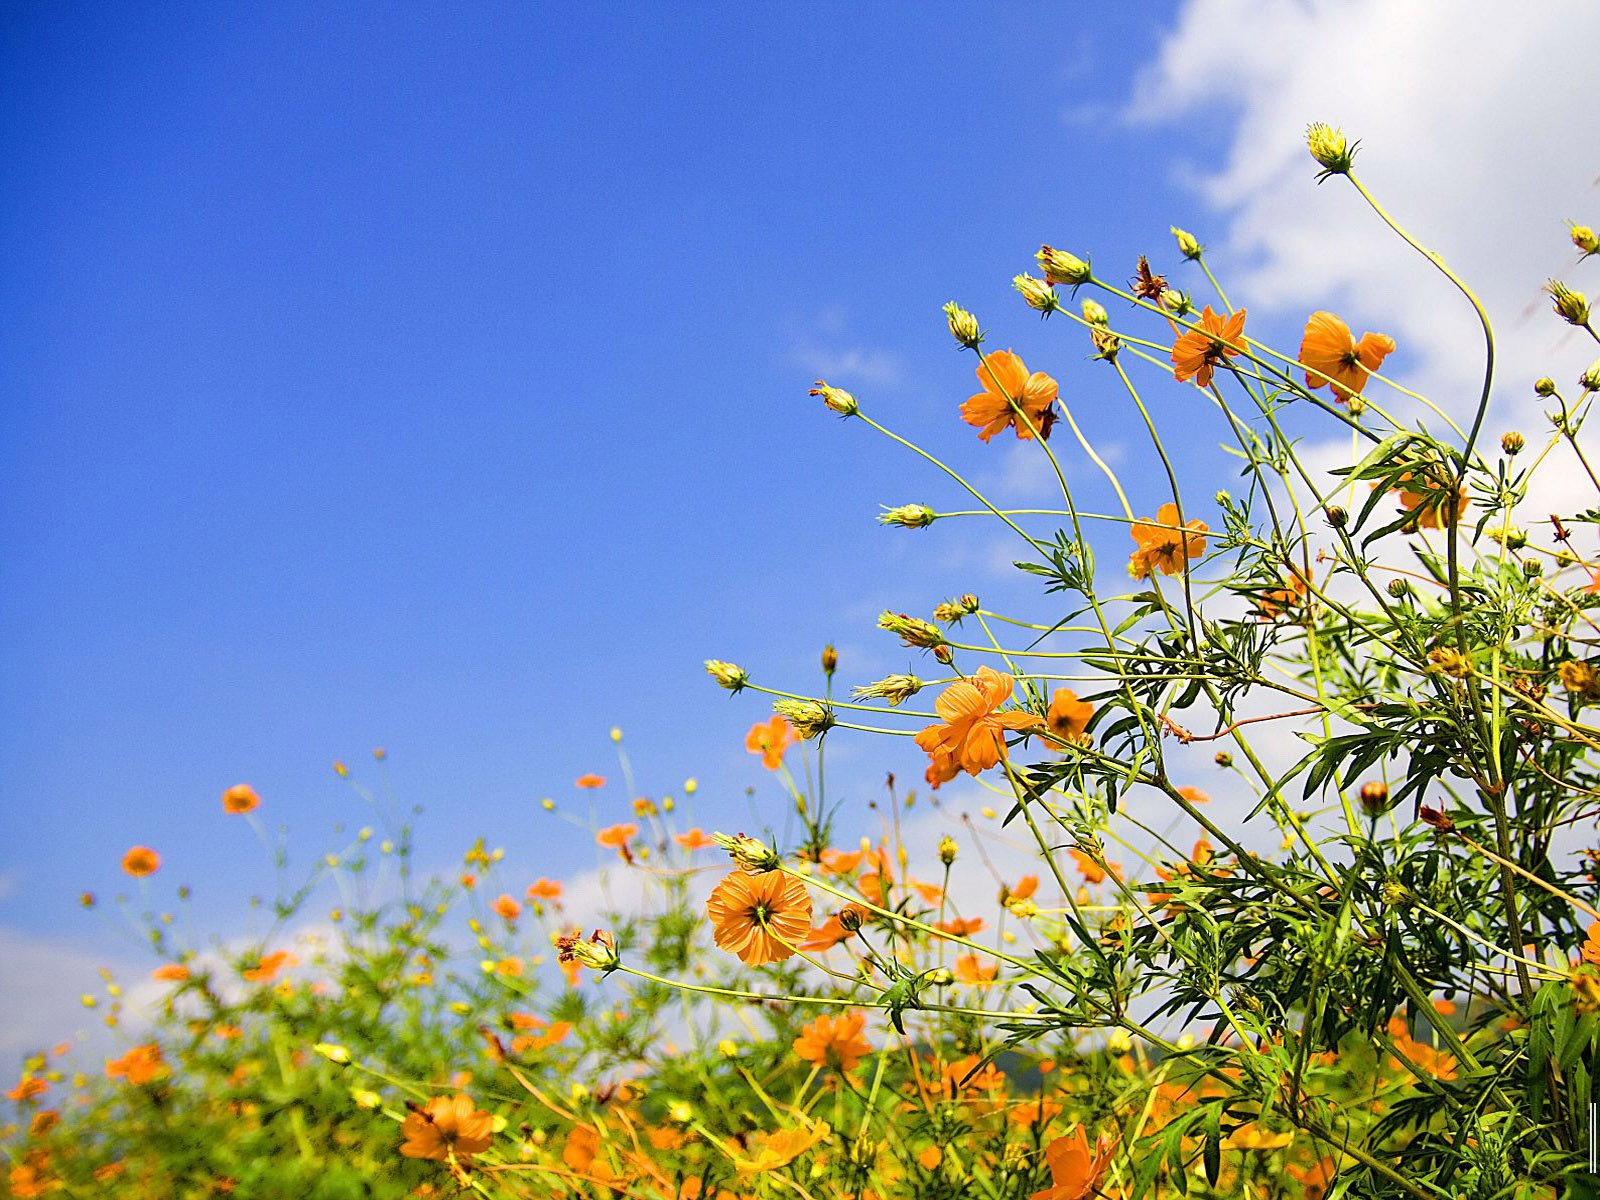 Sky and Spring Flower Wallpaper   Sky and Spring Flower 1600x1200